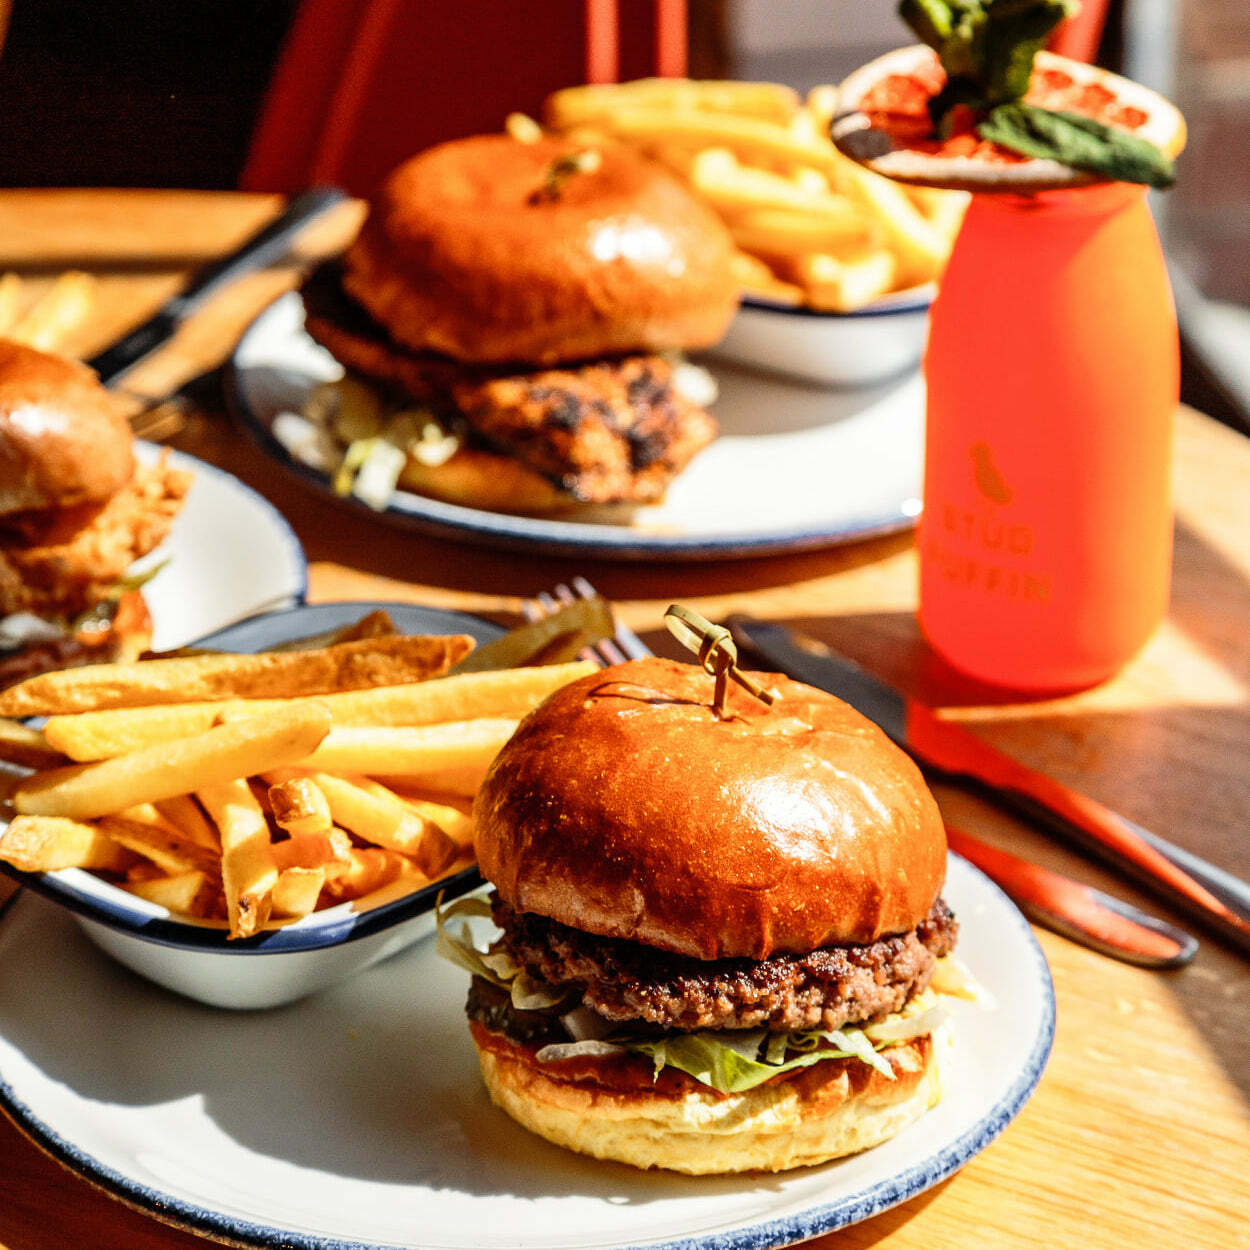 40% off food and drink all day everyday!